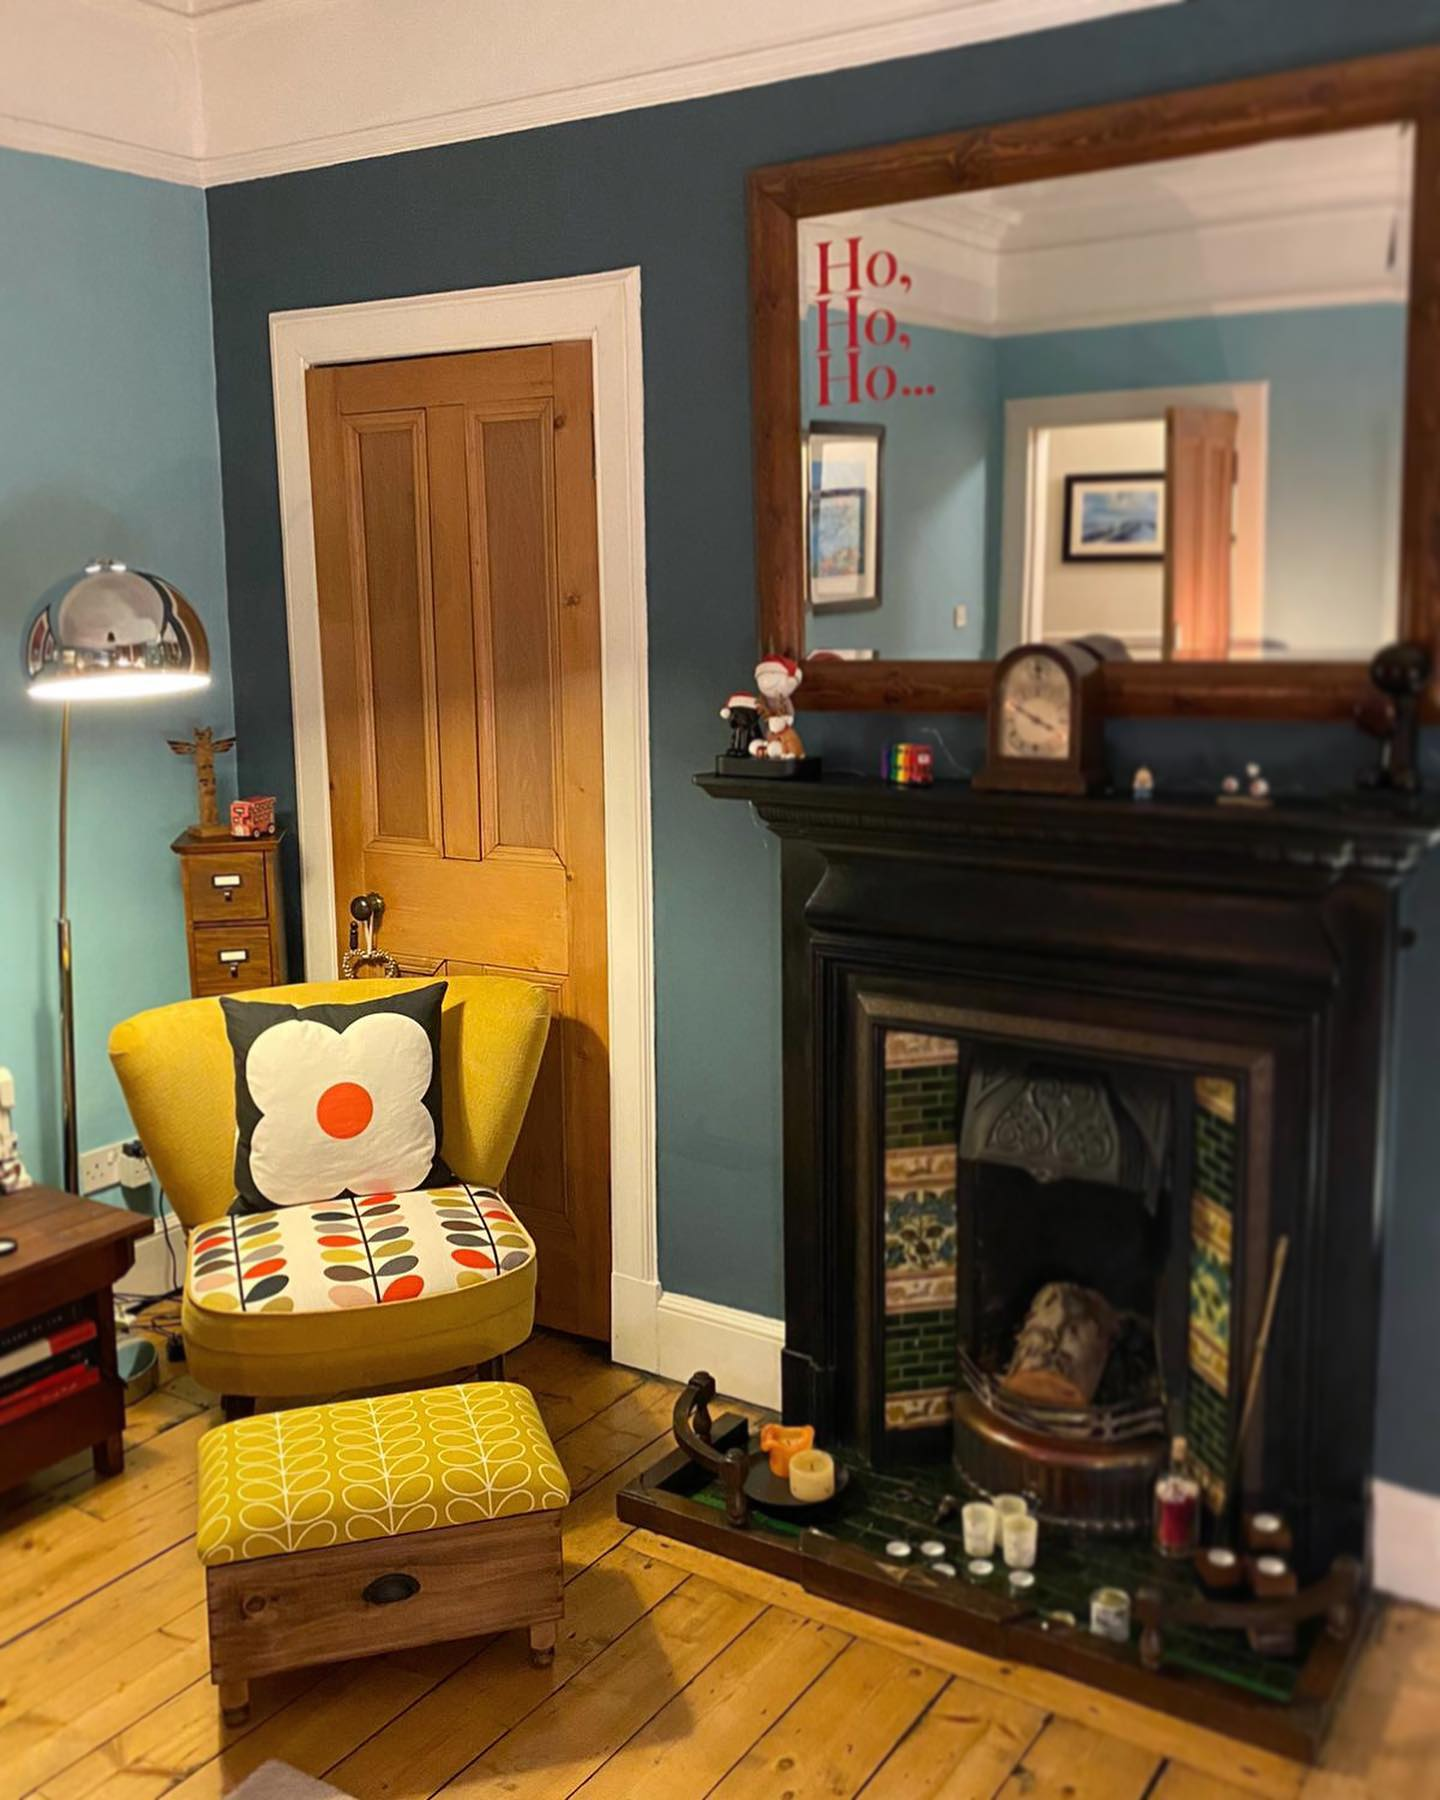 What a fabulous room! And our Orla Kiely Dandelion Ottoman fits in beautifully!Absolutely delighted to see this photo....#characterhome #victorian #homedecor #orlakiely #floral #perioddecor #oak #ochre #madetoorder #perfectfit #handcrafted #interior #gingerandtweed #bespoke #unique #giftideas